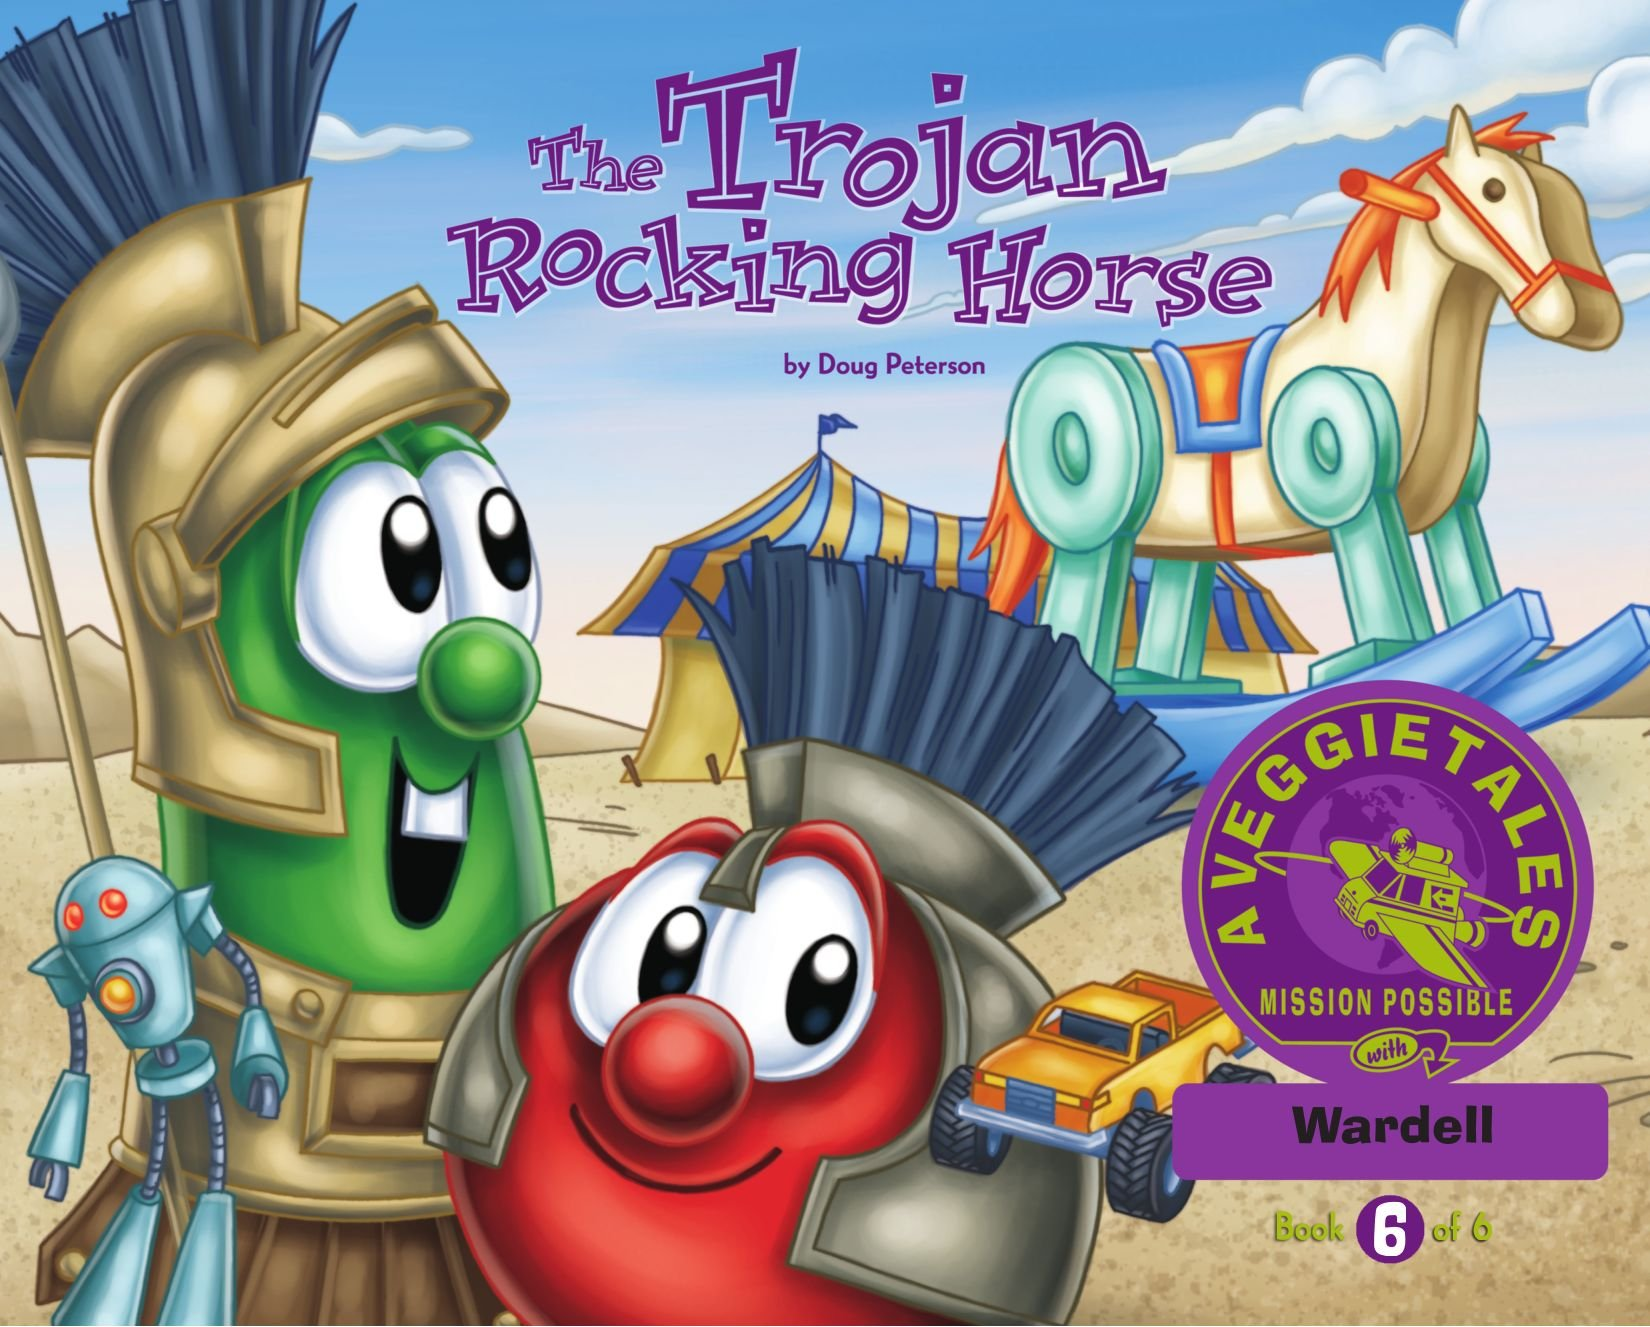 The Trojan Rocking Horse - VeggieTales Mission Possible Adventure Series #6: Personalized for Wardell (Girl) pdf